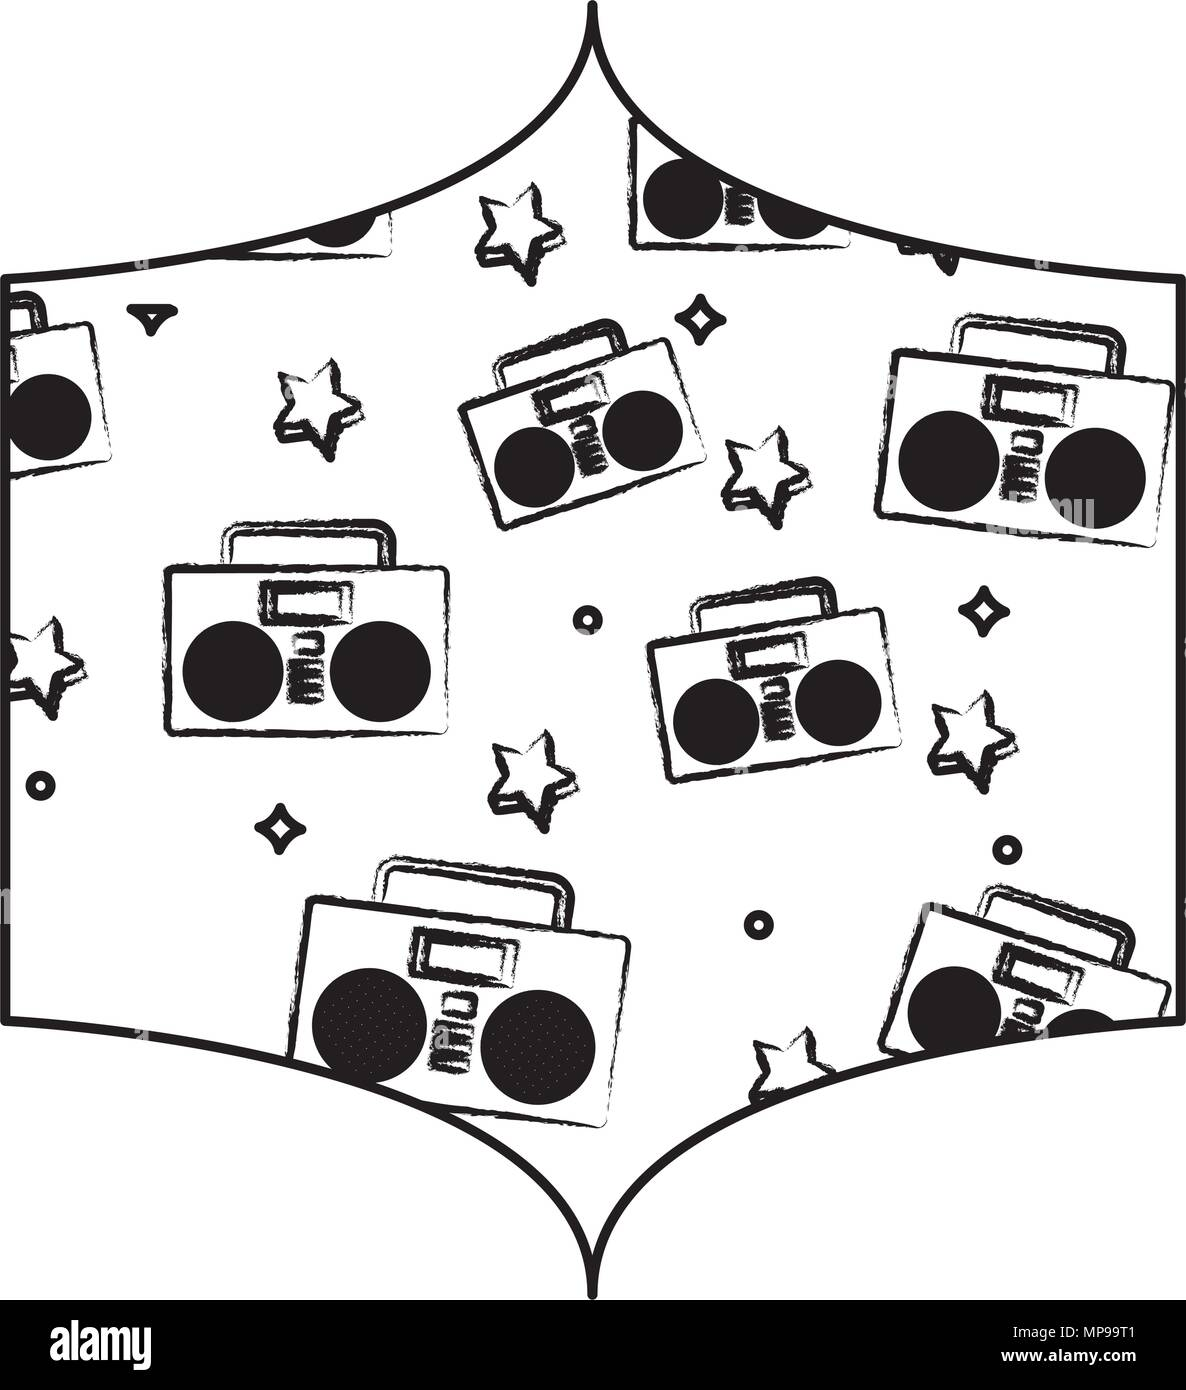 decorative frame with Boombox stereo and stars pattern over white background, vector illustration - Stock Image